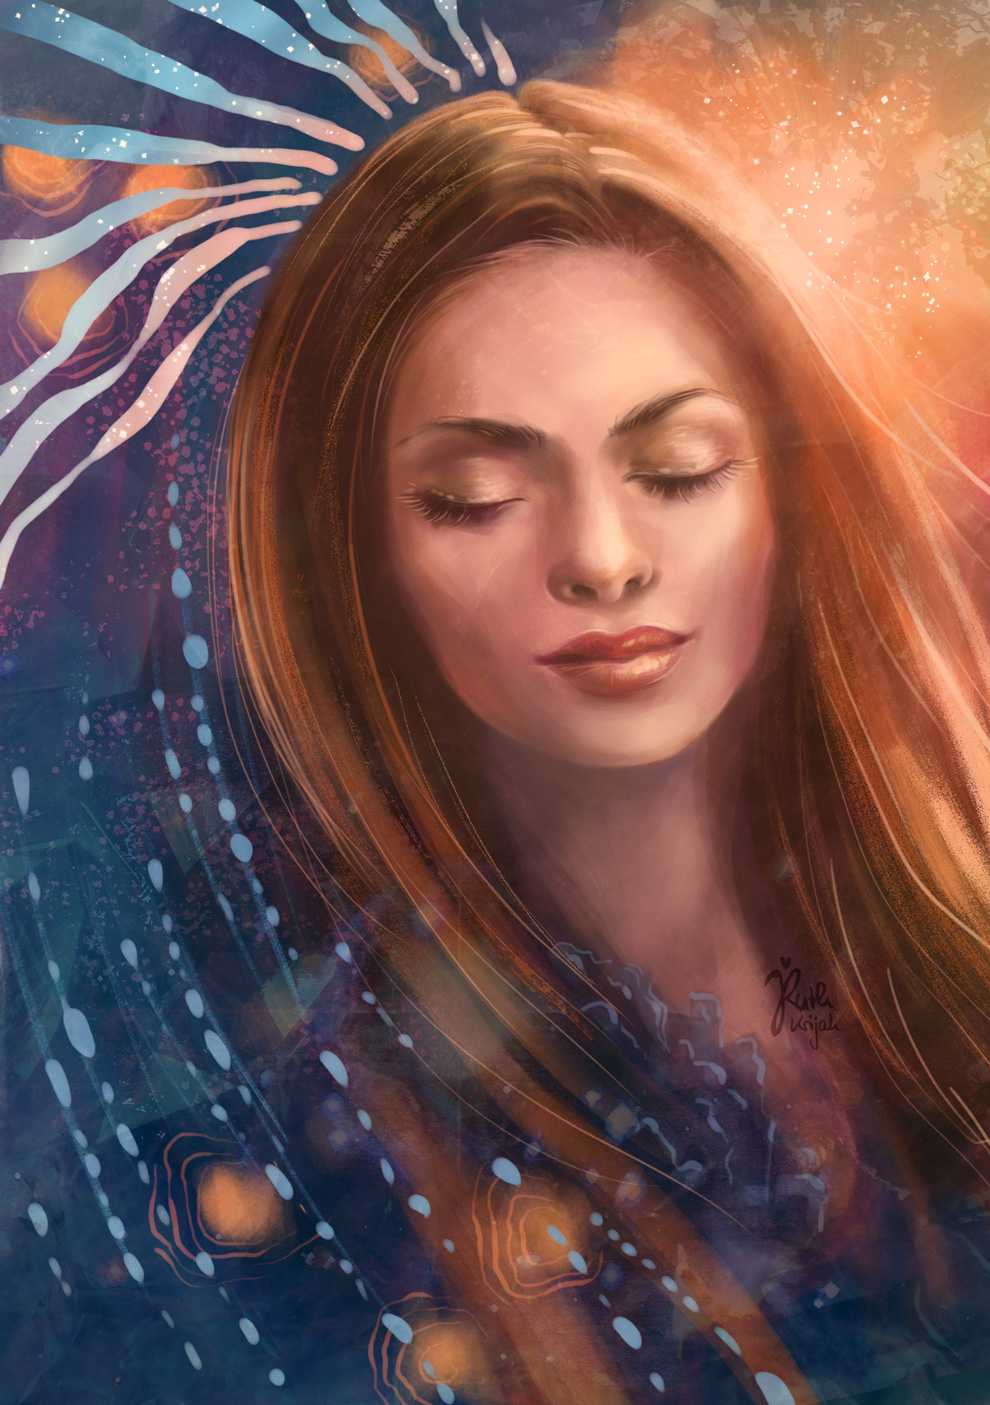 Digital Portrait of a Woman closed eyes. Crystal clarity. Inner Peace and Serenity. Inner Woman Portrait. By Artist Ruth Krijah - inspired by and created for patrons at patreon.com/ruthkrijah